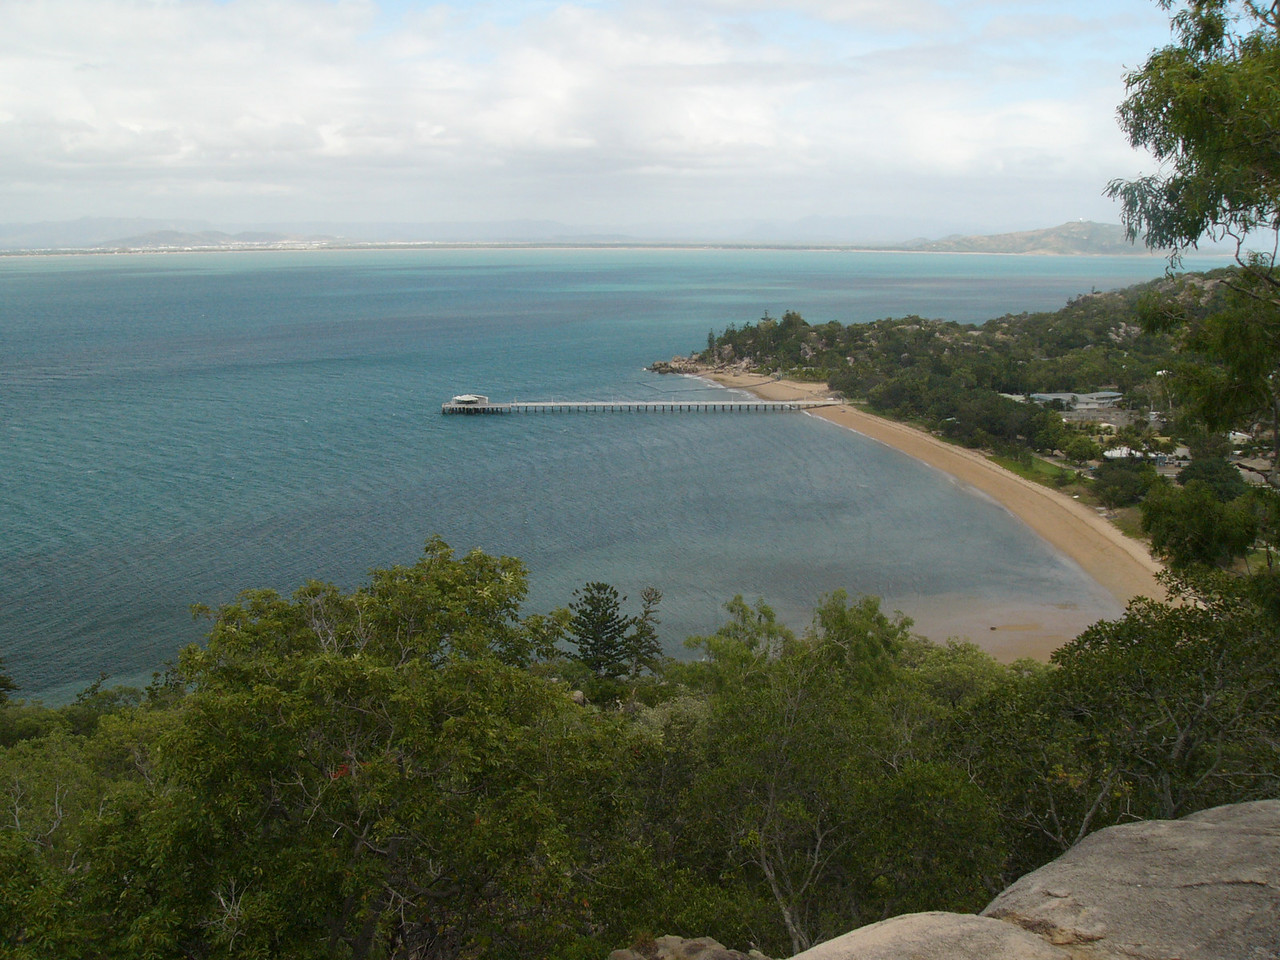 20070526_2786 Hawkings Point, Magnetic Island. Overlooking Picnic Bay.